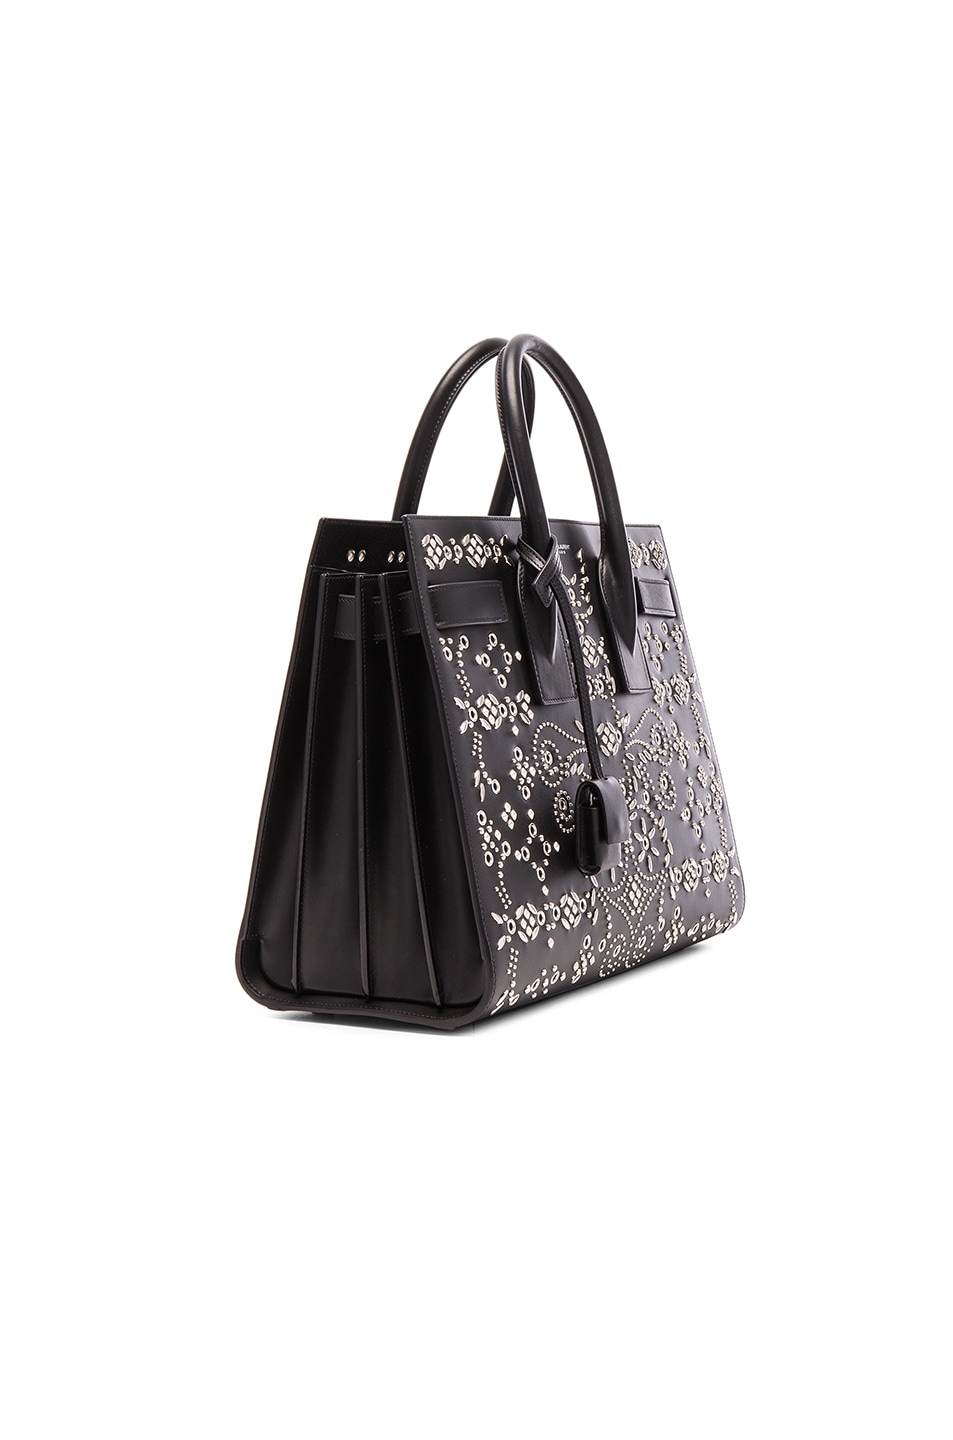 ysl black tote - Saint Laurent Small Bandana Embroidery Sac De Jour in Black | FWRD